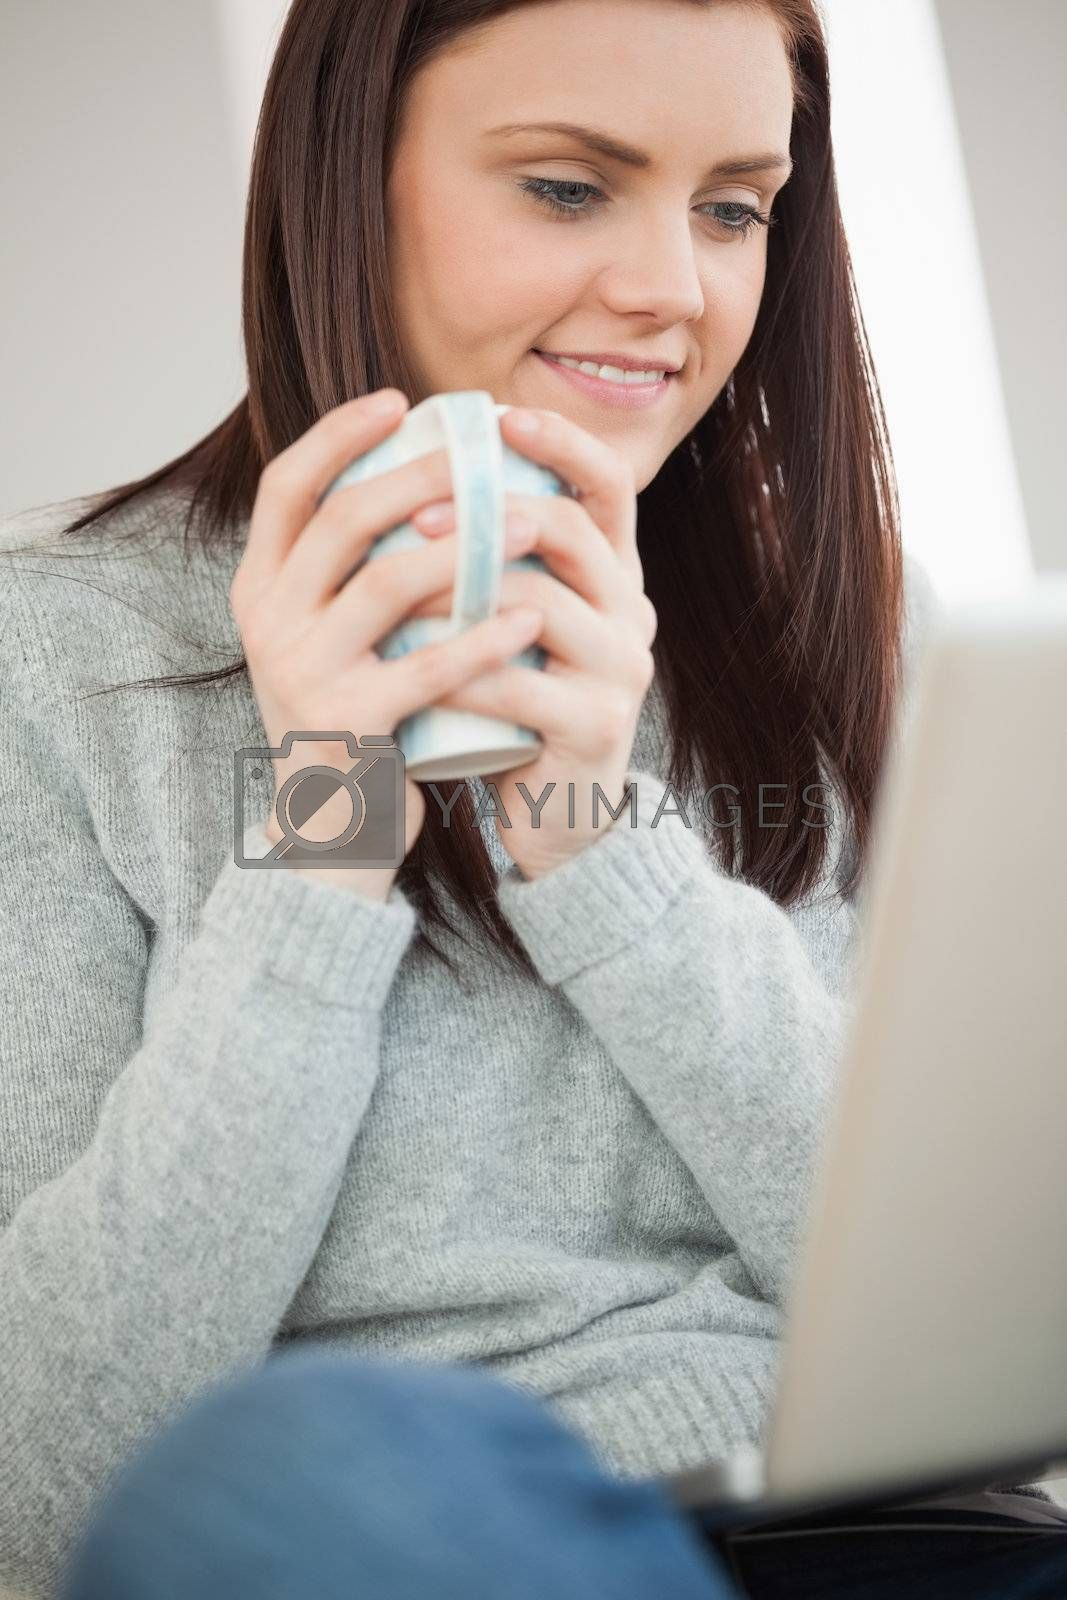 Smiling girl sitting on a sofa holding a cup of coffee and looking at laptop by Wavebreakmedia